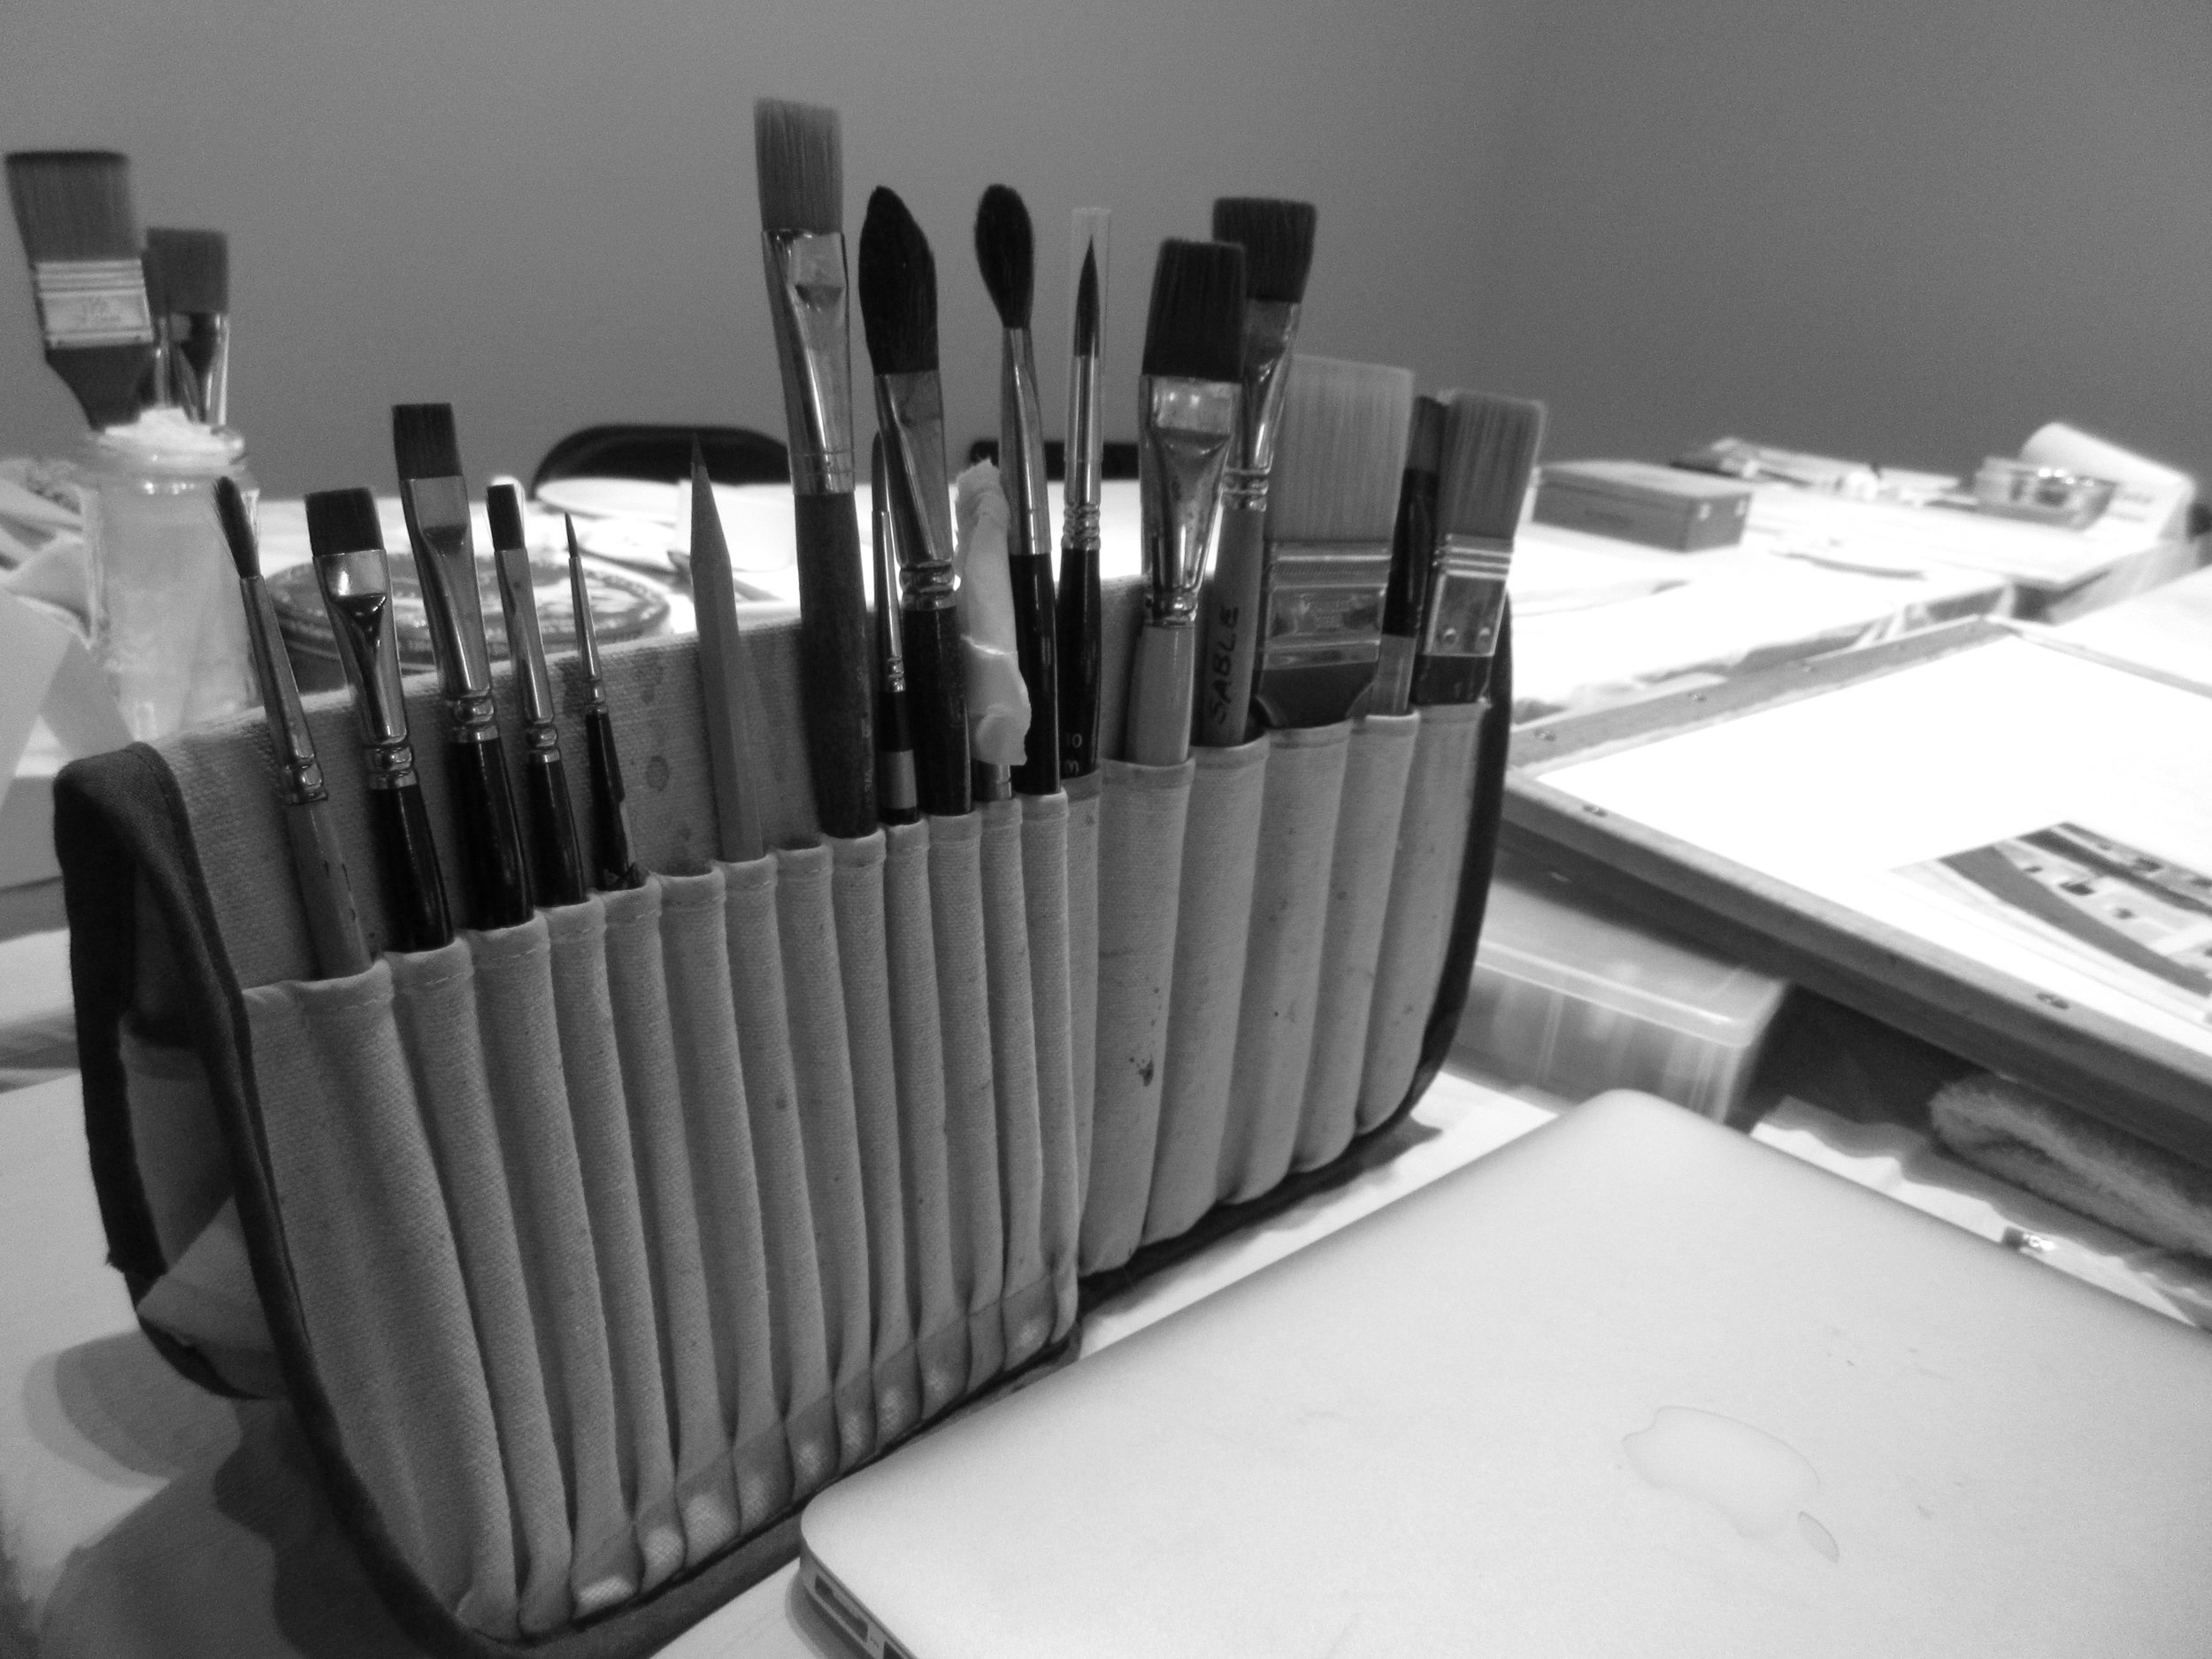 A student prepare's their station with their personal art supplies.